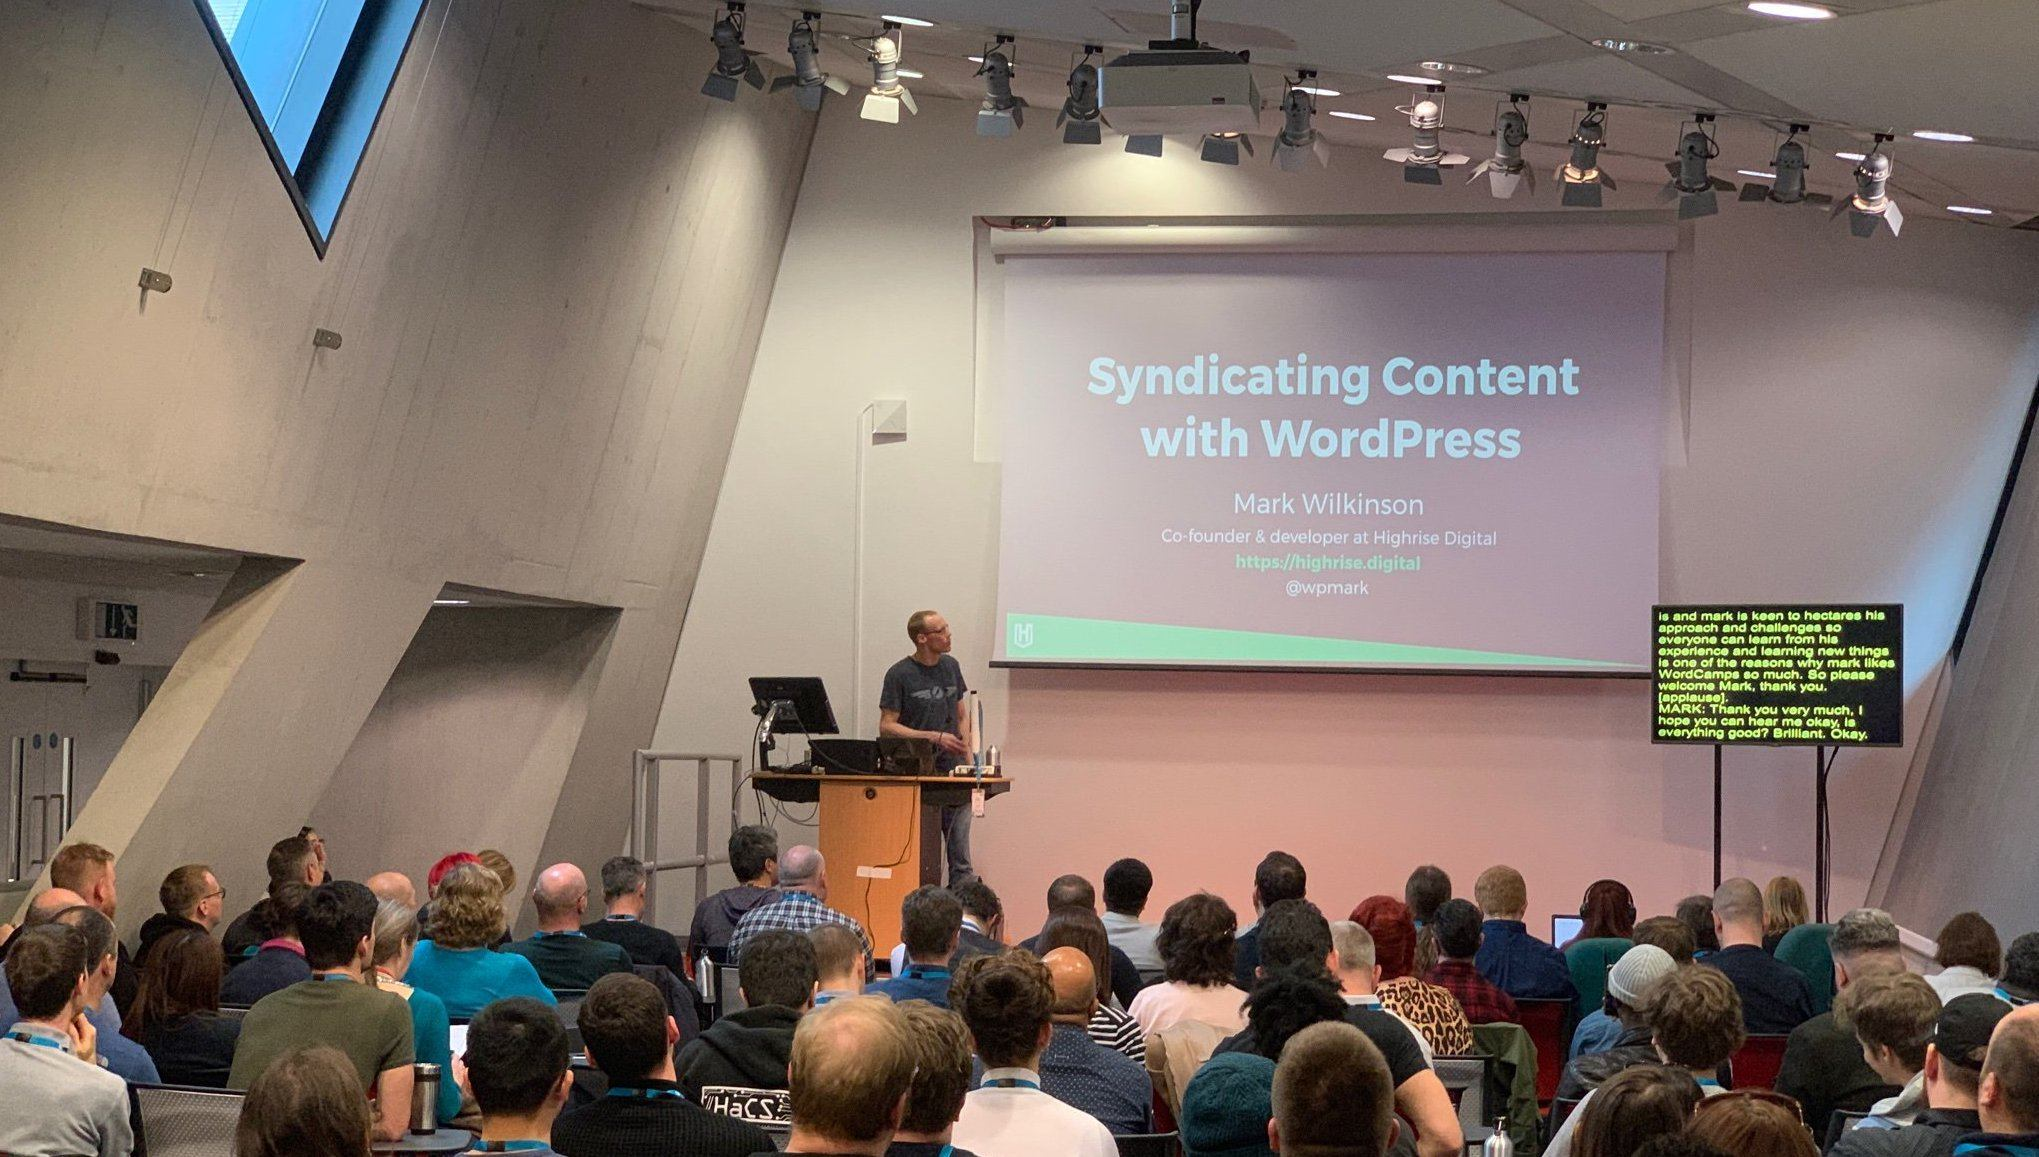 Image of Mark Wilkinson speaking at WordCamp London 2019.